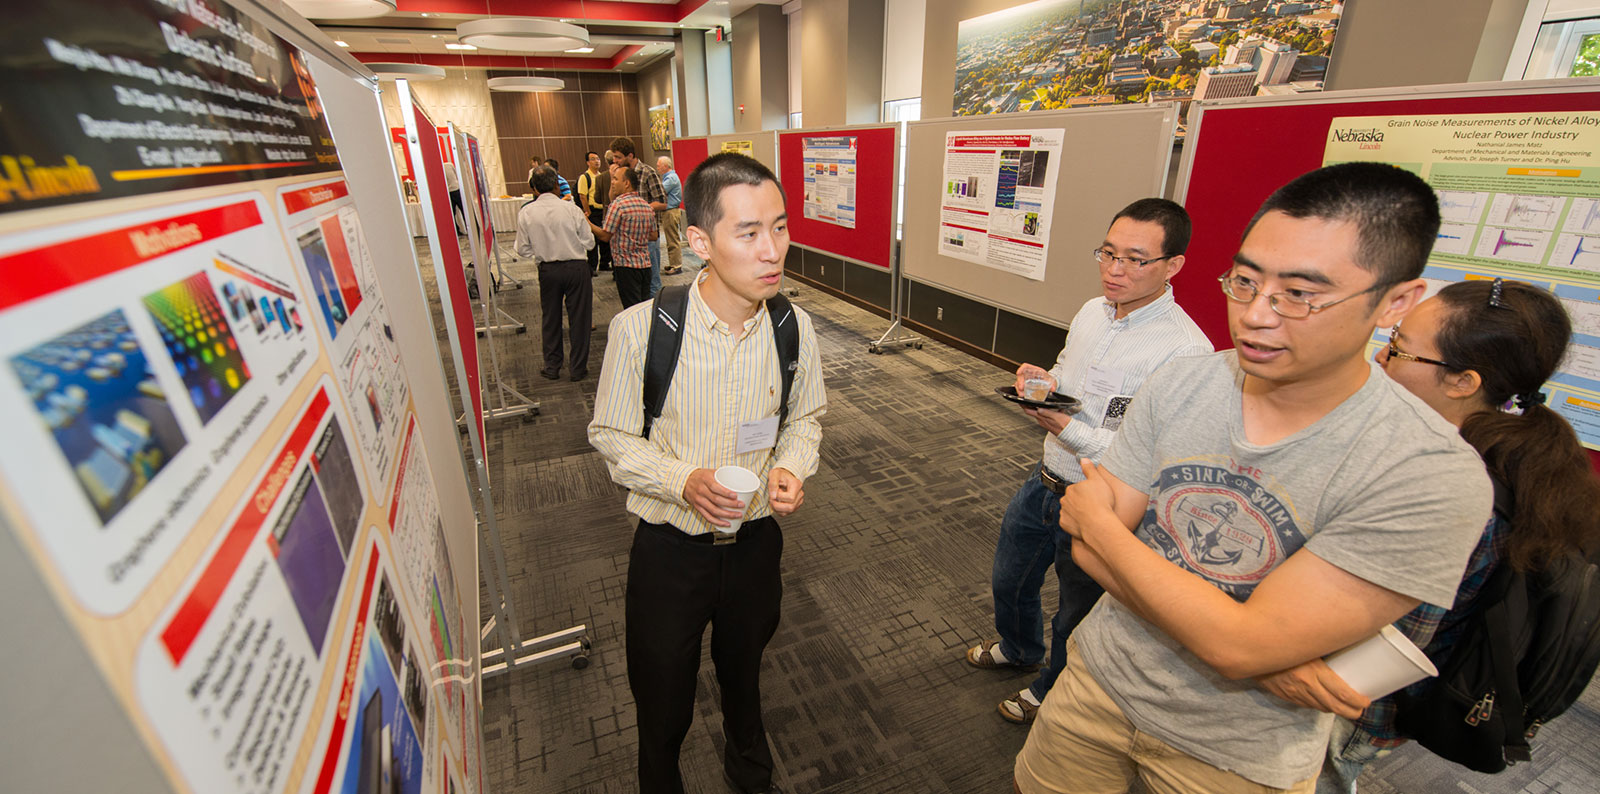 Dr. Wei Xiong discusses a poster display